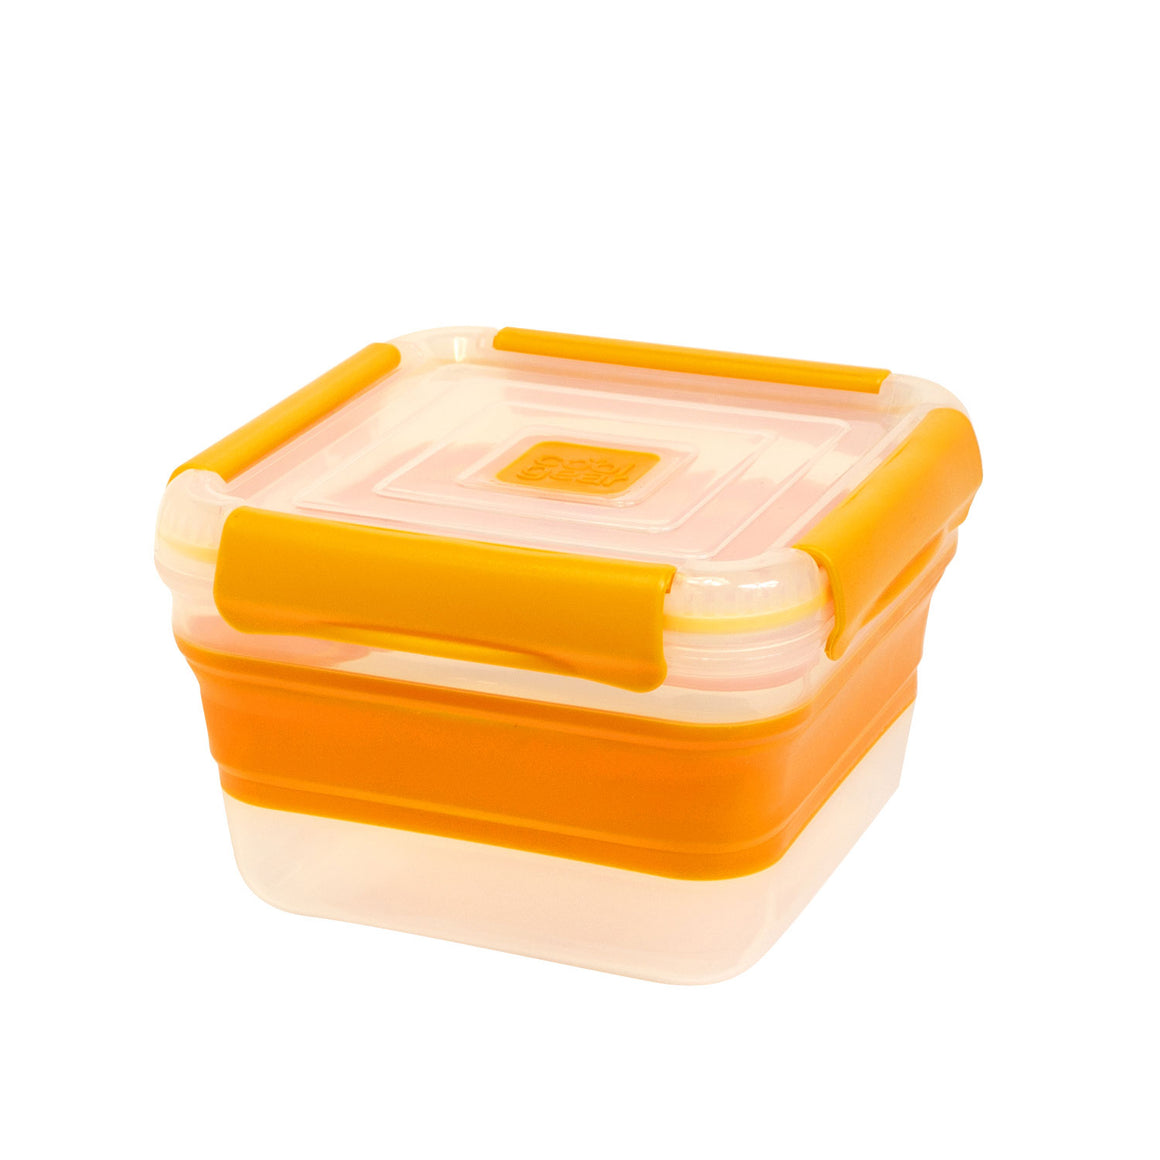 Orange 5.5 Cup Expandable Small Square Food Container at Cool Gear Food Containers